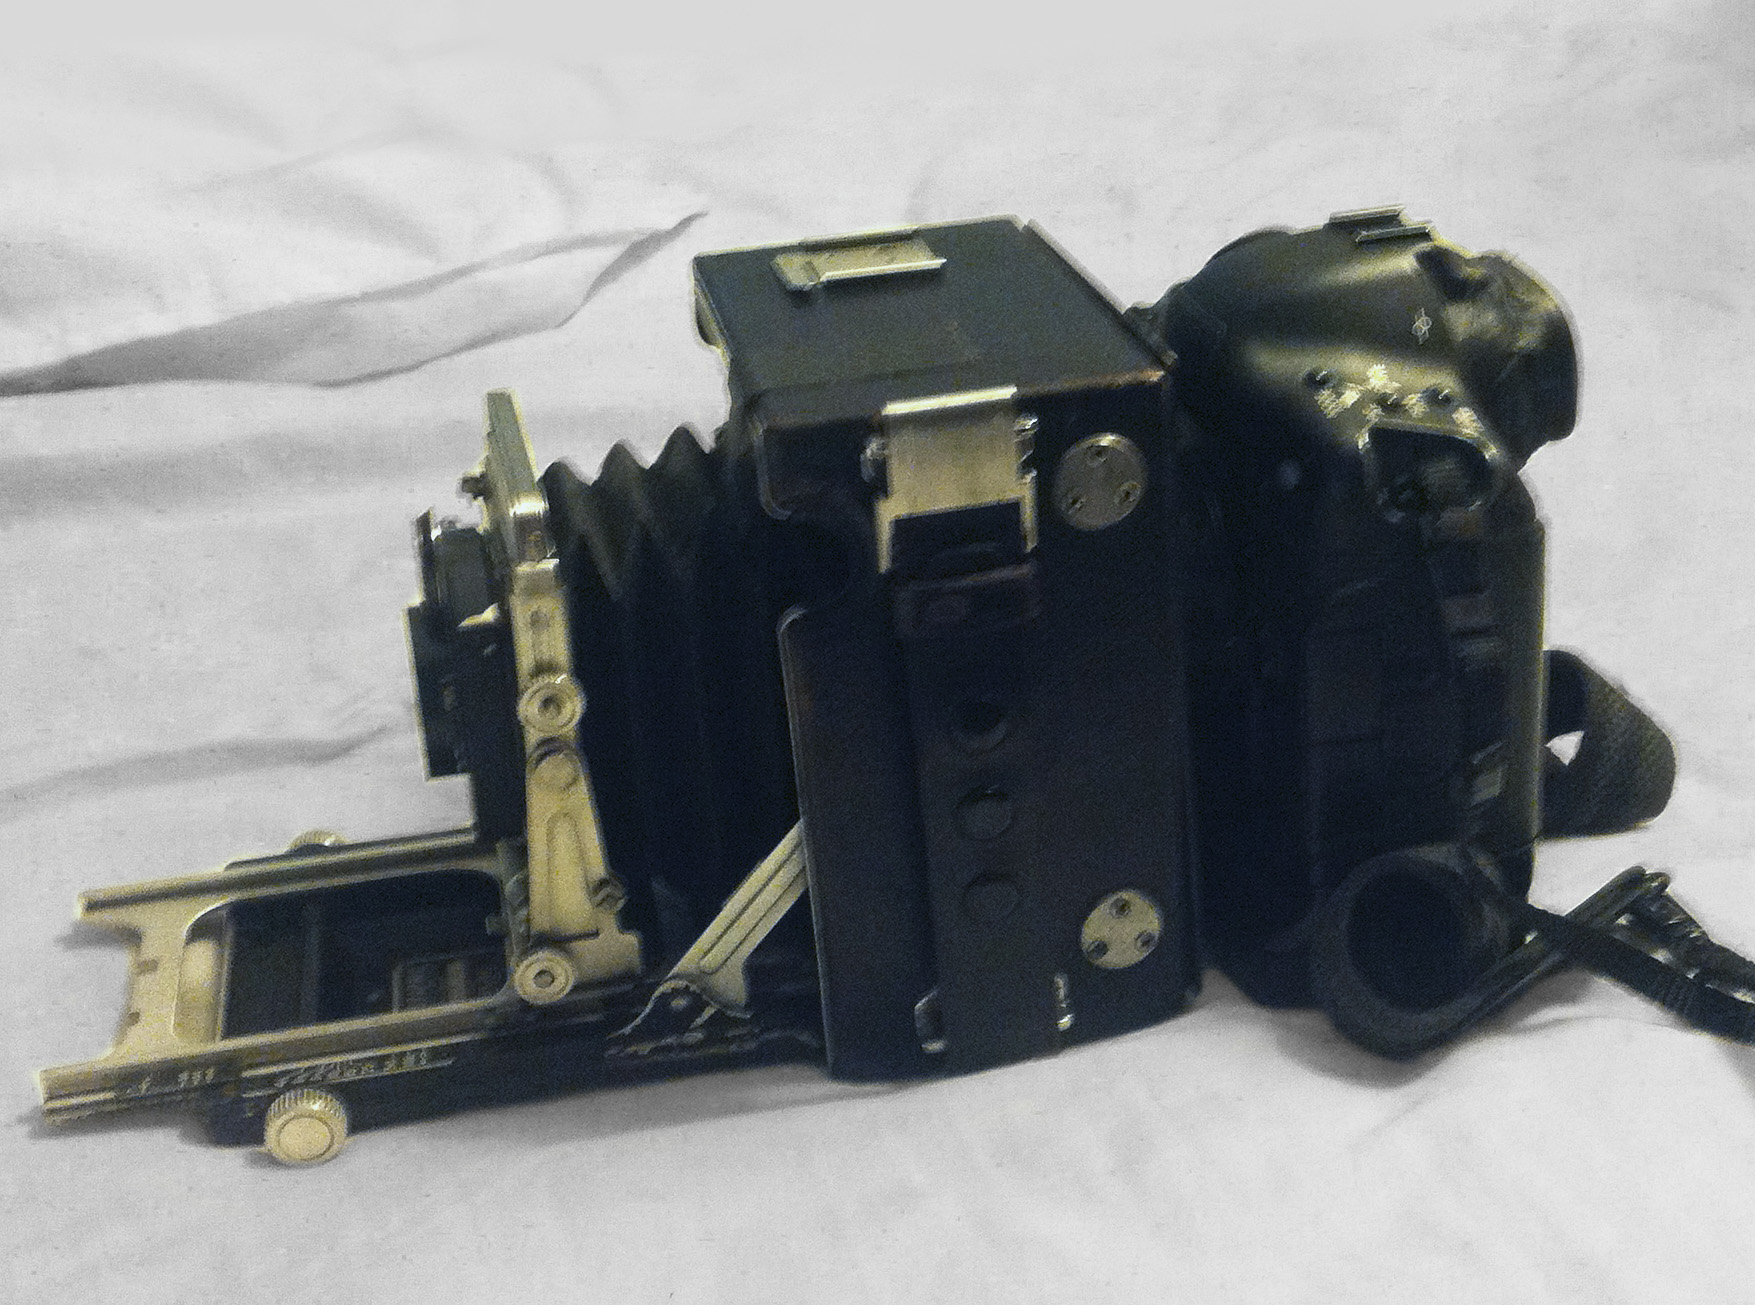 The 2nd view camera prototype. All gallery above was shot with this rig